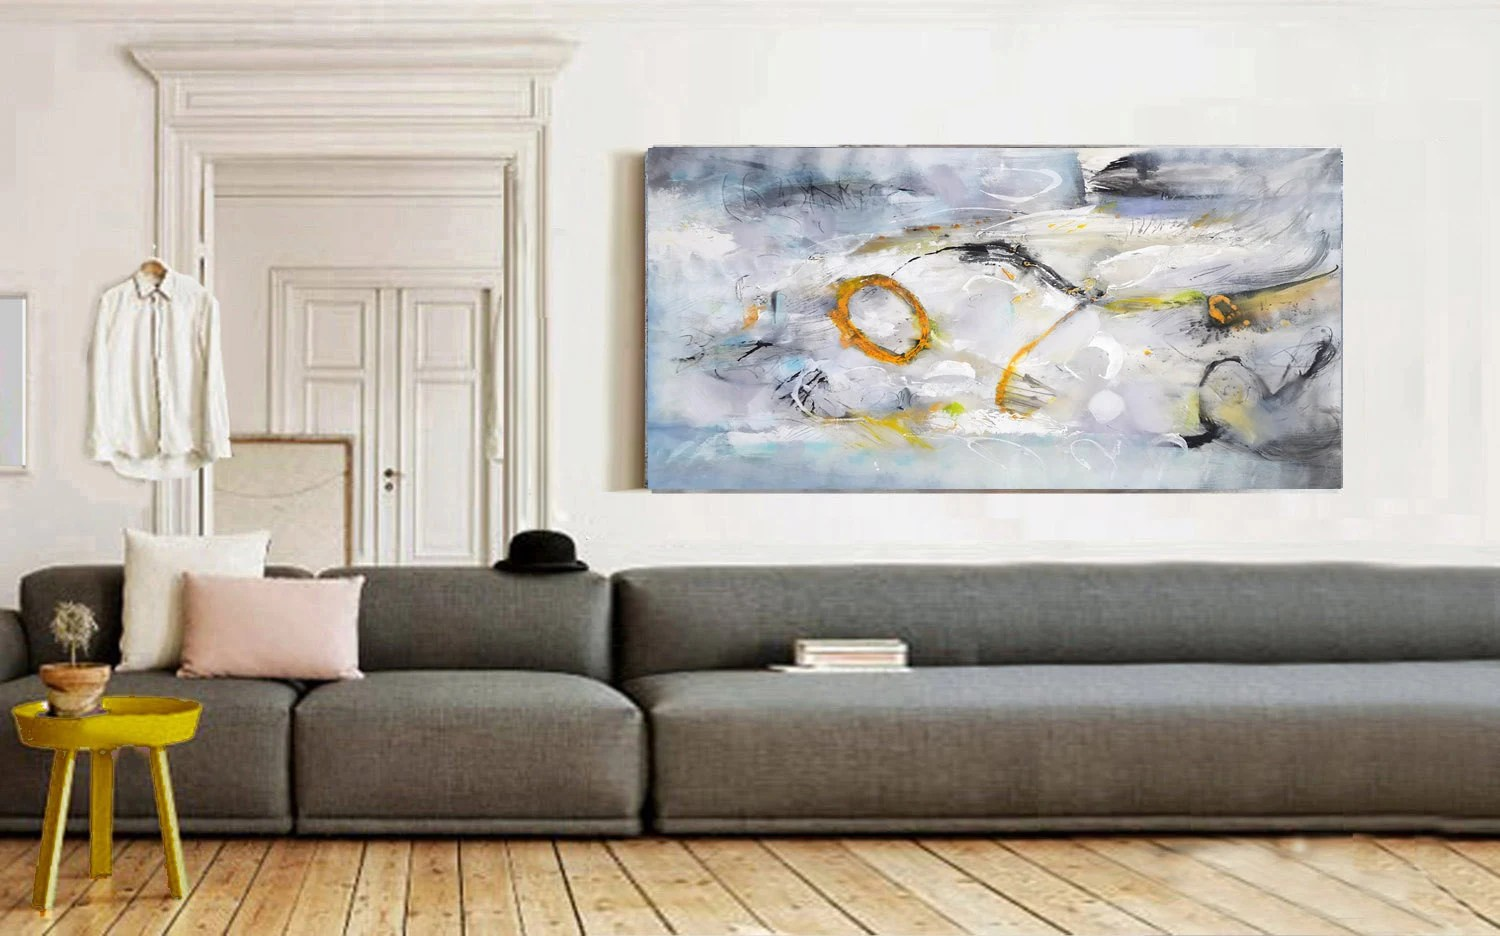 contemporary artwork living room small ideas fireplace art paintings for decoration modern wall large abstract canvas decor fine painting hanging work